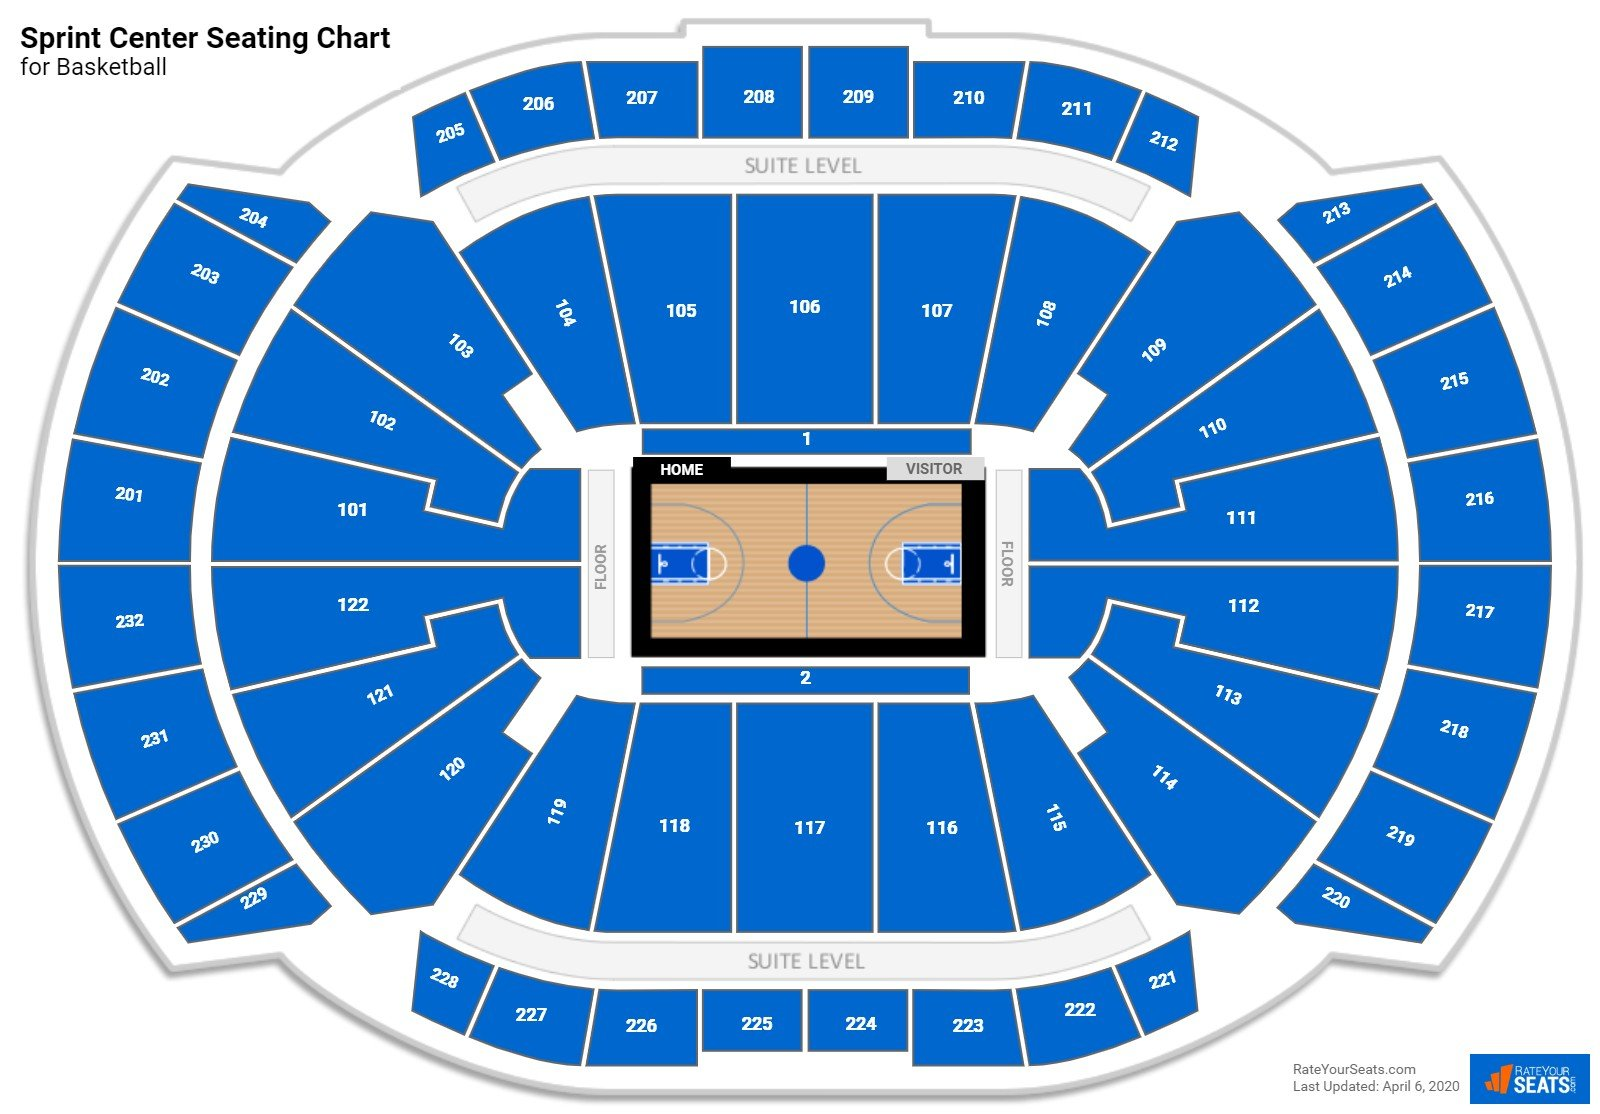 Sprint Center Seating Chart for Basketball